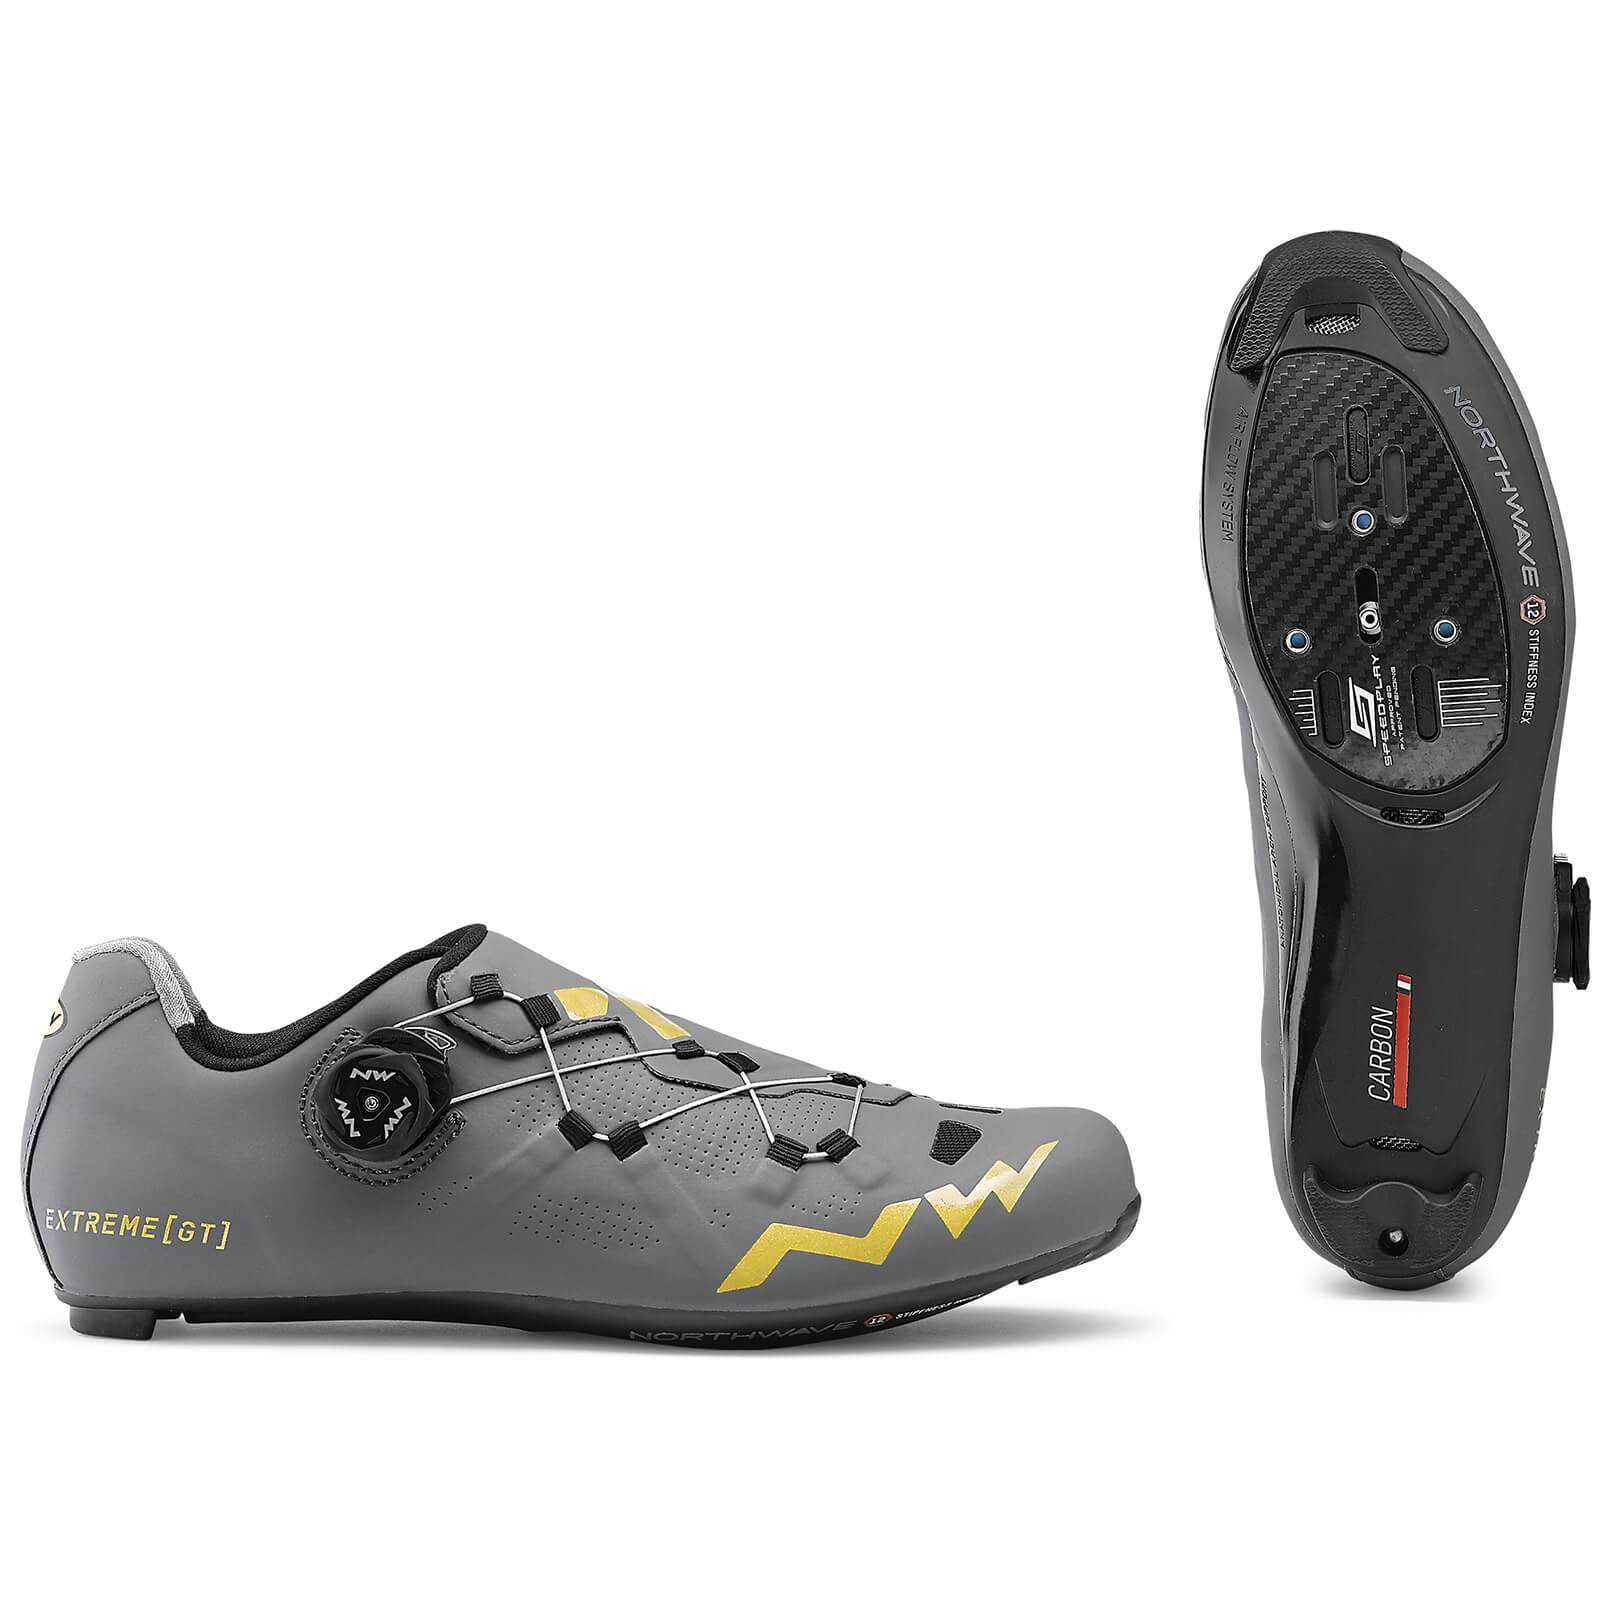 Northwave Extreme GT Road Shoes - Anthracite/Gold - EU 41/UK 7.5/US 8.5 - Grey/Gold